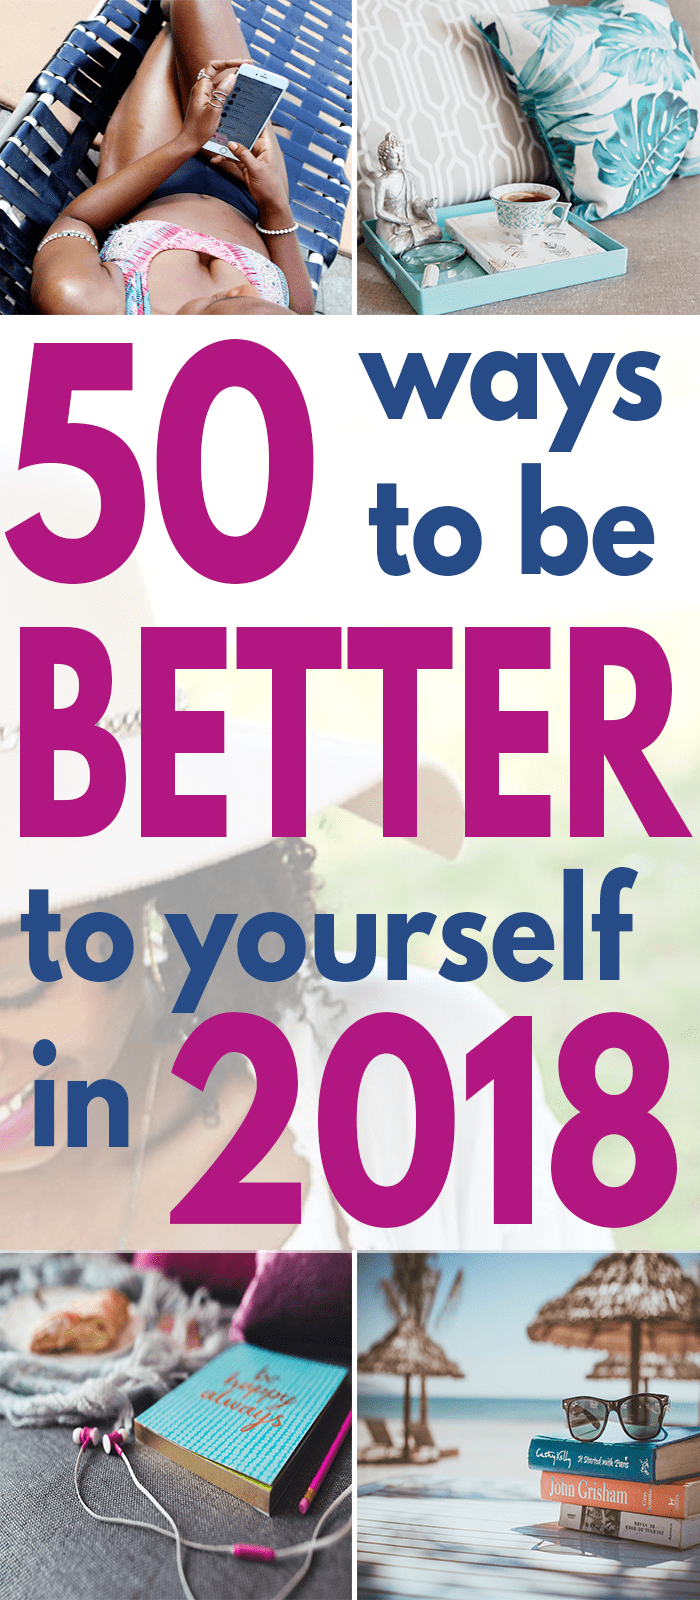 You can never have enough self-care ideas! Here are 50 ways you can be better to yourself!